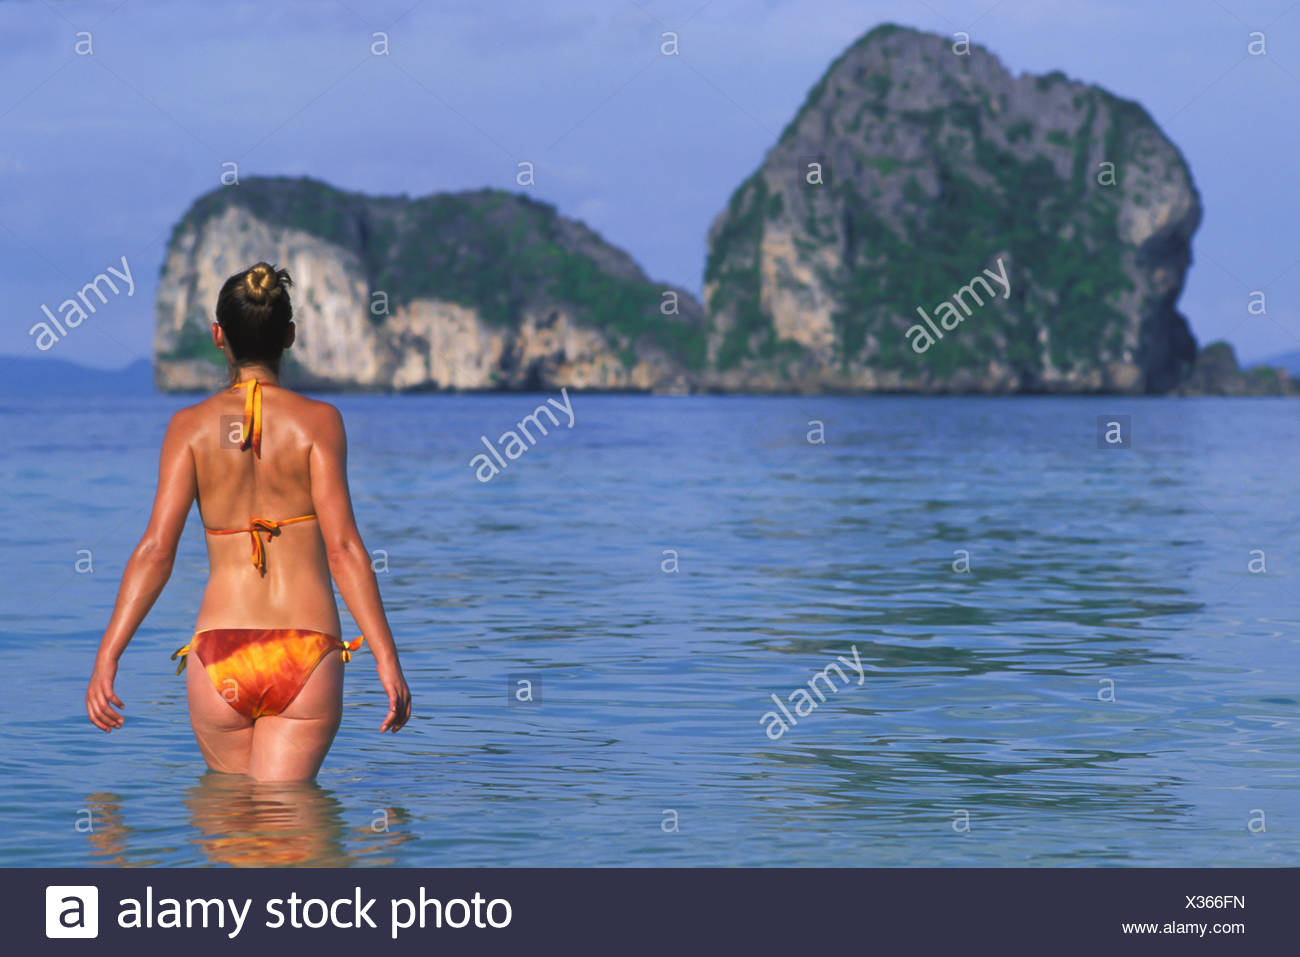 A Woman Tourist Wearing A Bikini Enjoys The Sunshine On The Tropical Island Of Koh Ngai Or Ko Ngai Near Trang; Koh Ngai Thailand - Stock Image